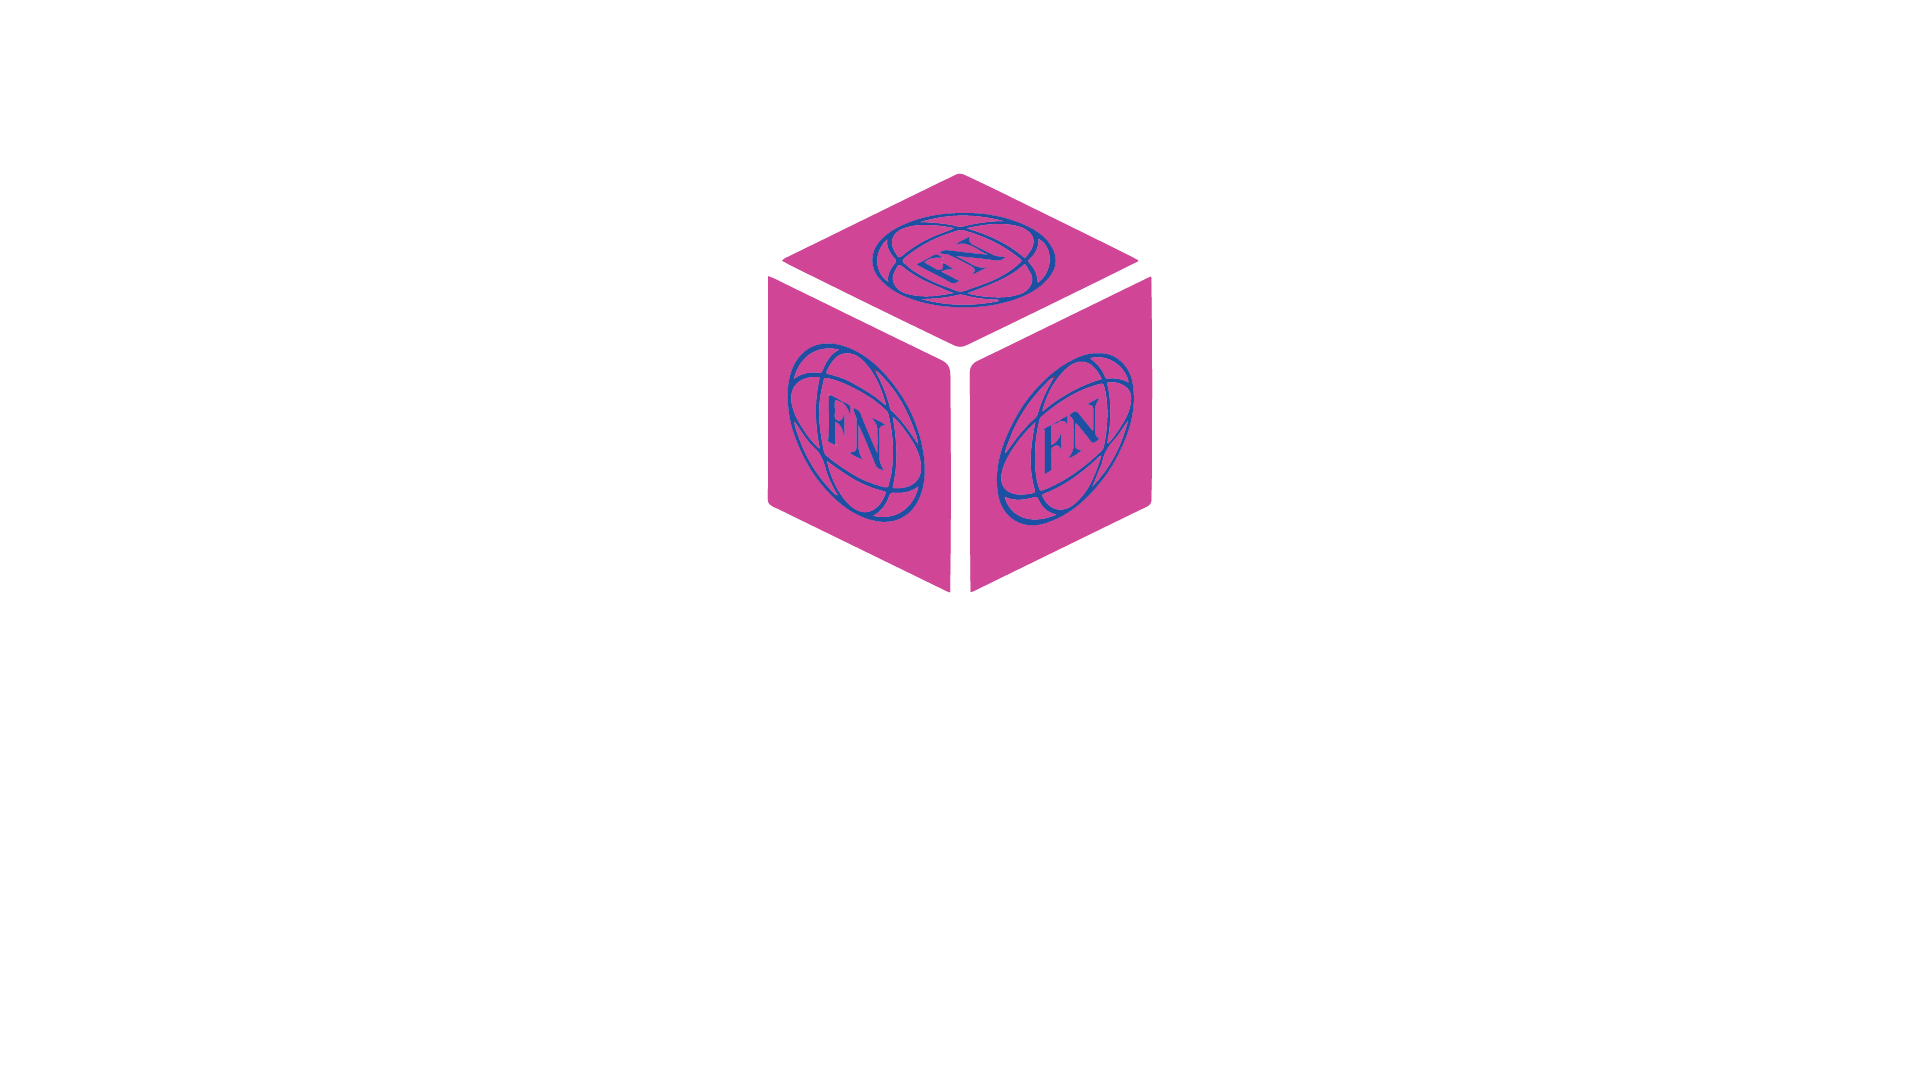 these will take you to different rooms